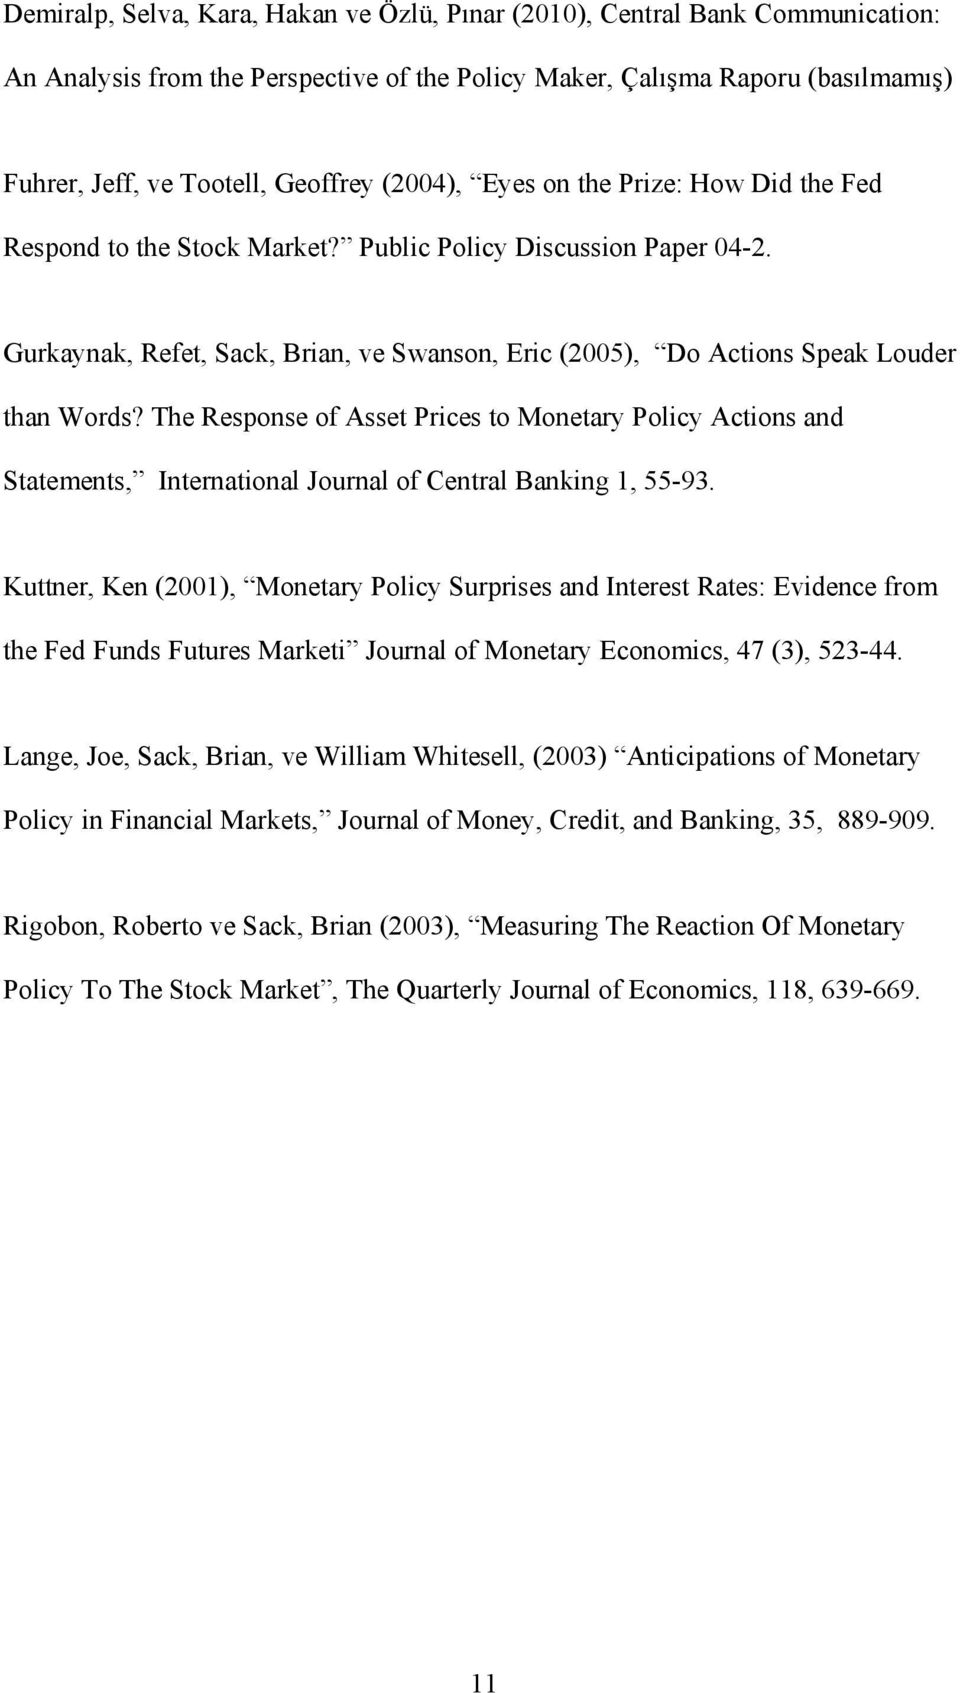 The Response of Asset Prices to Monetary Policy Actions and Statements, International Journal of Central Banking 1, 55-93.